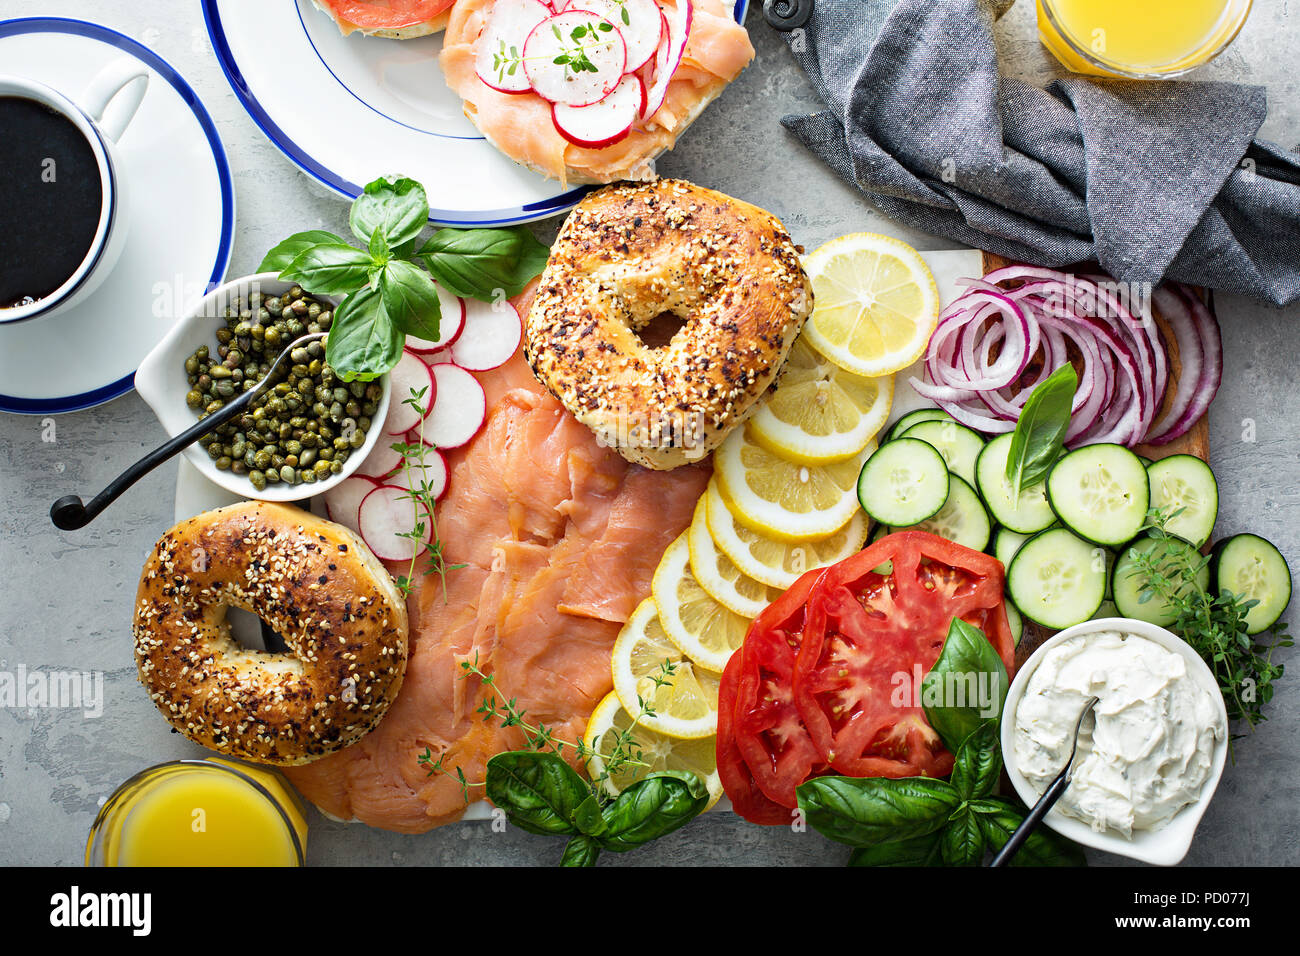 Des Bagels et lox platter Photo Stock